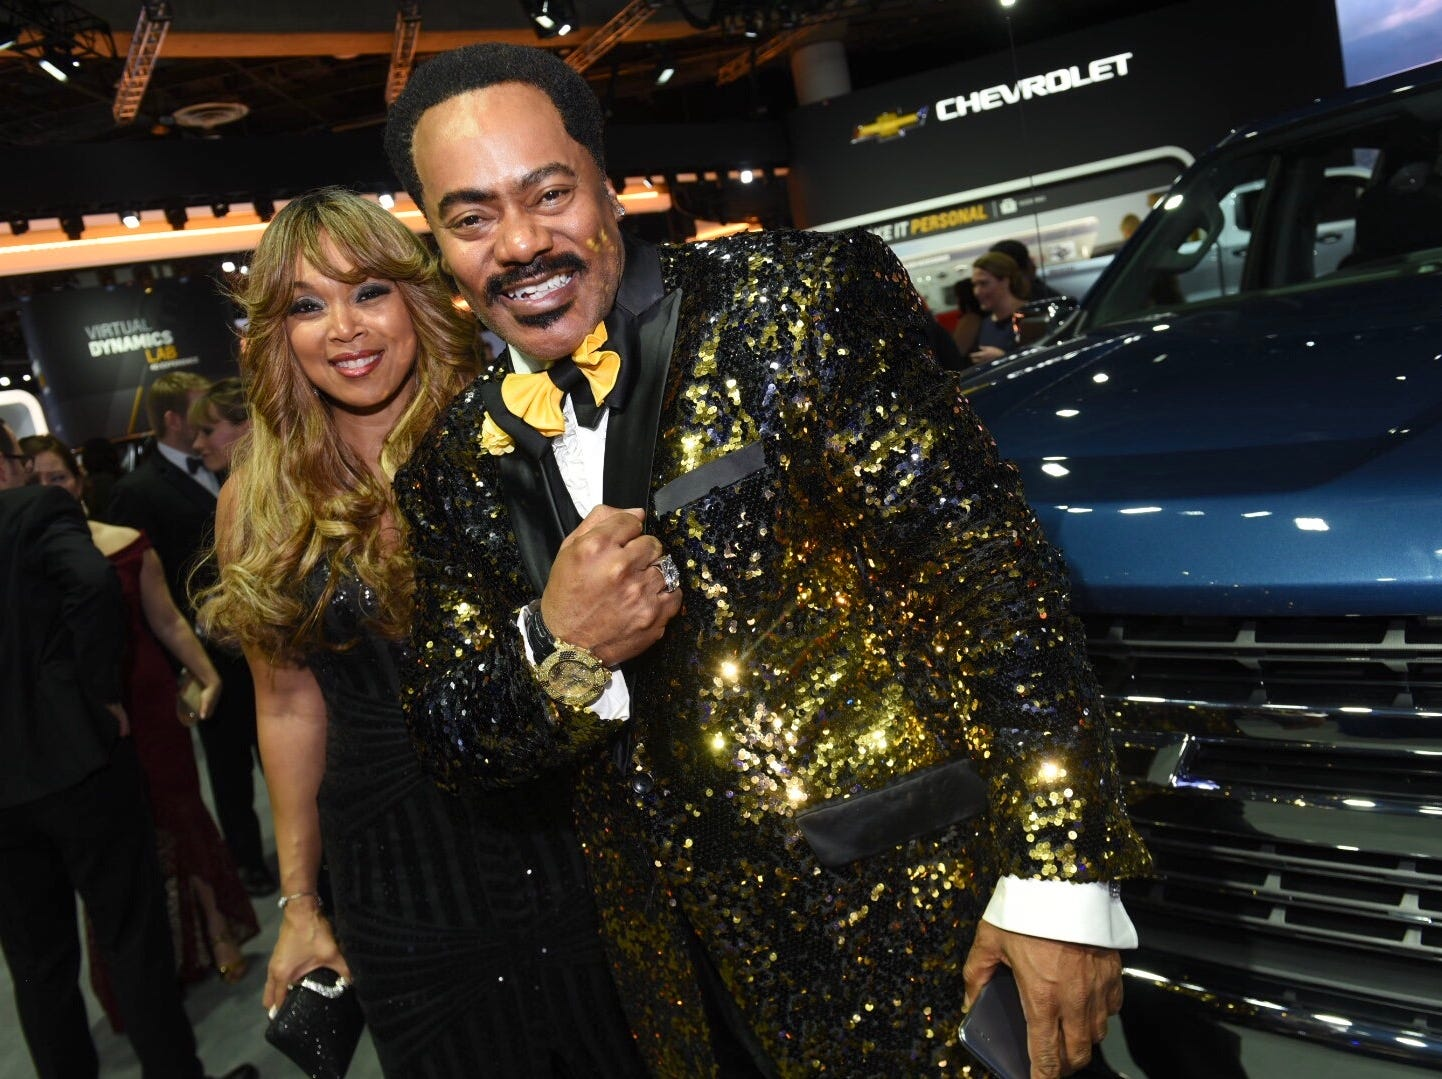 Thomas J. Bolden shines with his golden sport coat and his date, Cassandra Frederick of Detroit, in the Chevy exhibit area.